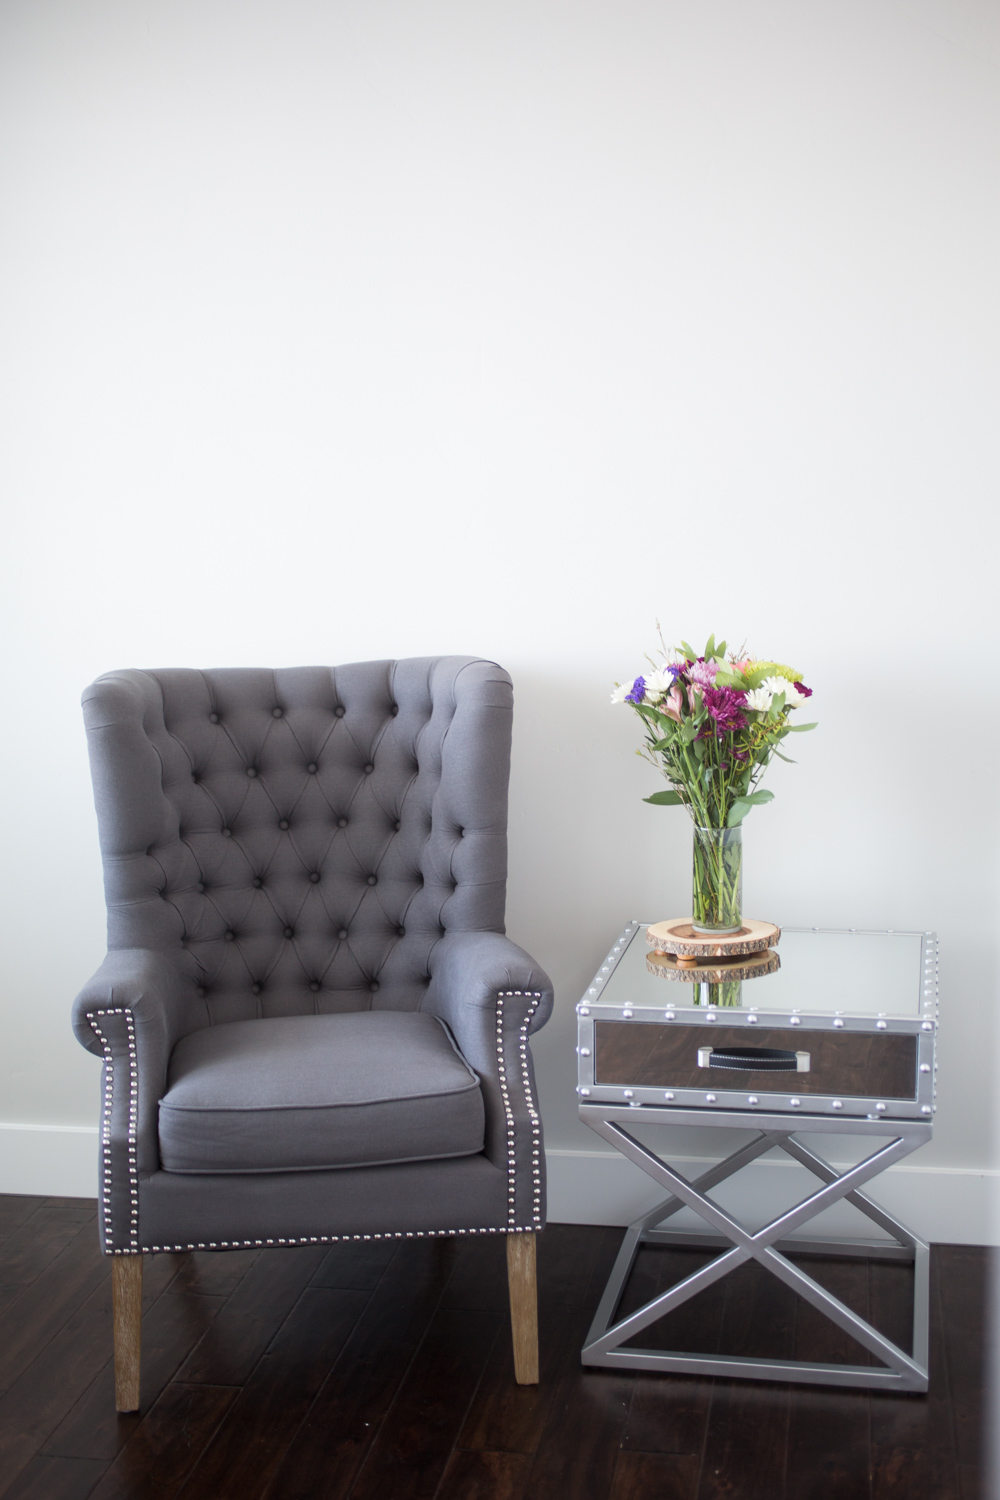 Wayfair.com Furniture Review